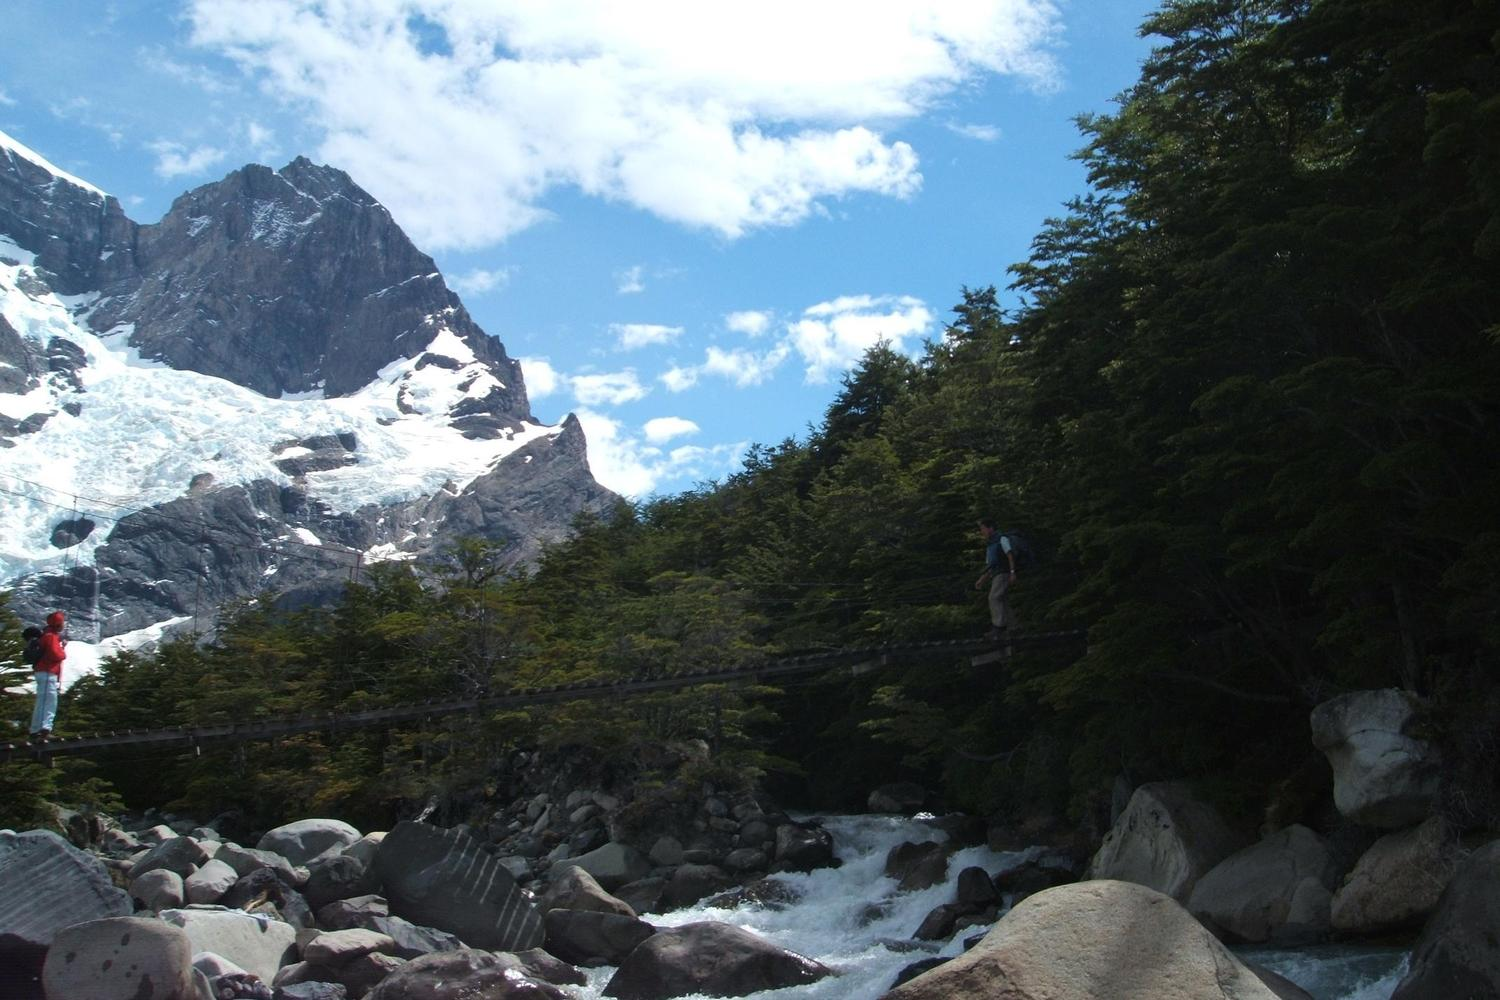 Crossing the hanging bridges of the W hike in Torres del Paine